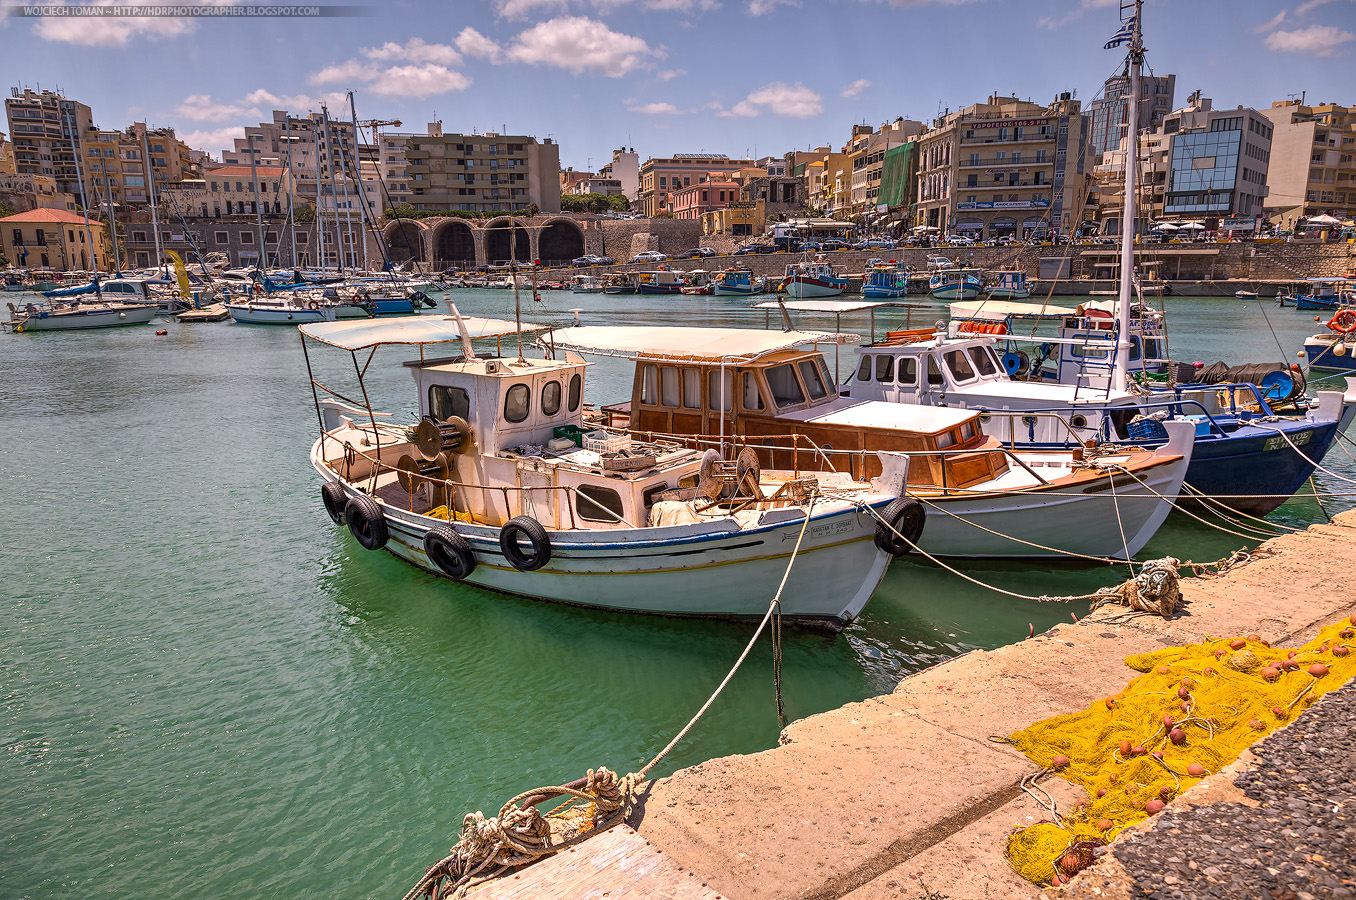 Port in Heraklion